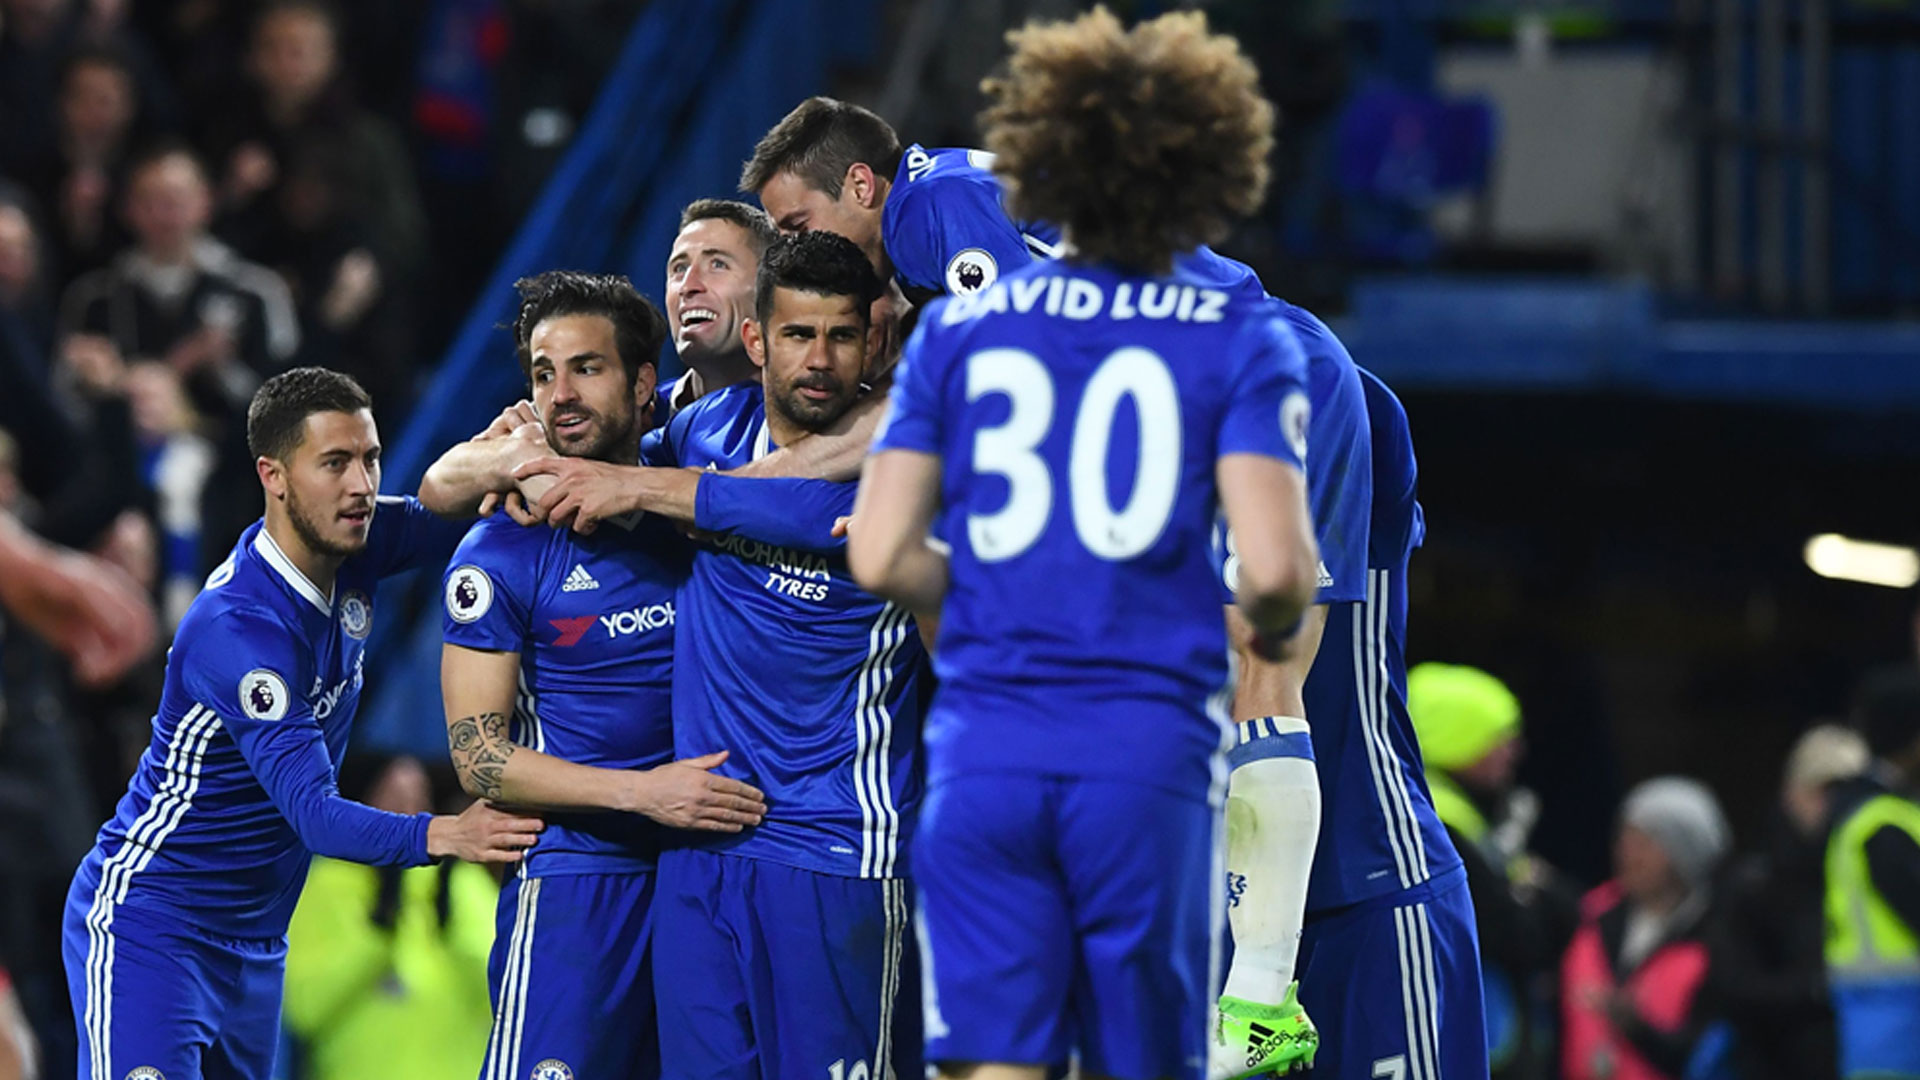 http://images.performgroup.com/di/library/GOAL/3b/f6/diego-costa_1u225ef1lqprr14eihk05mr50m.jpg